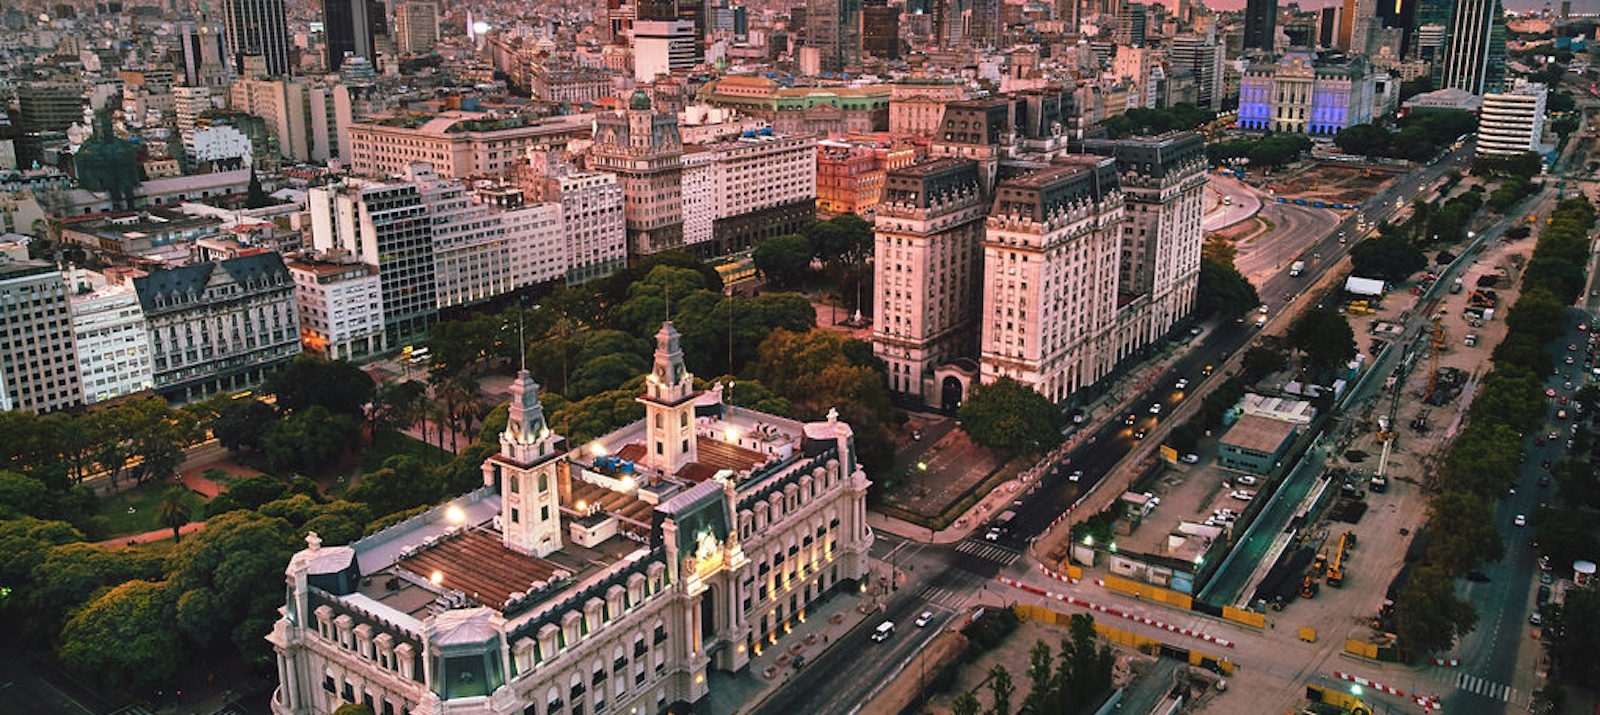 The G20 Leaders Meeting will be held in Buenos Aires (Photo: Densel/ Flickr)